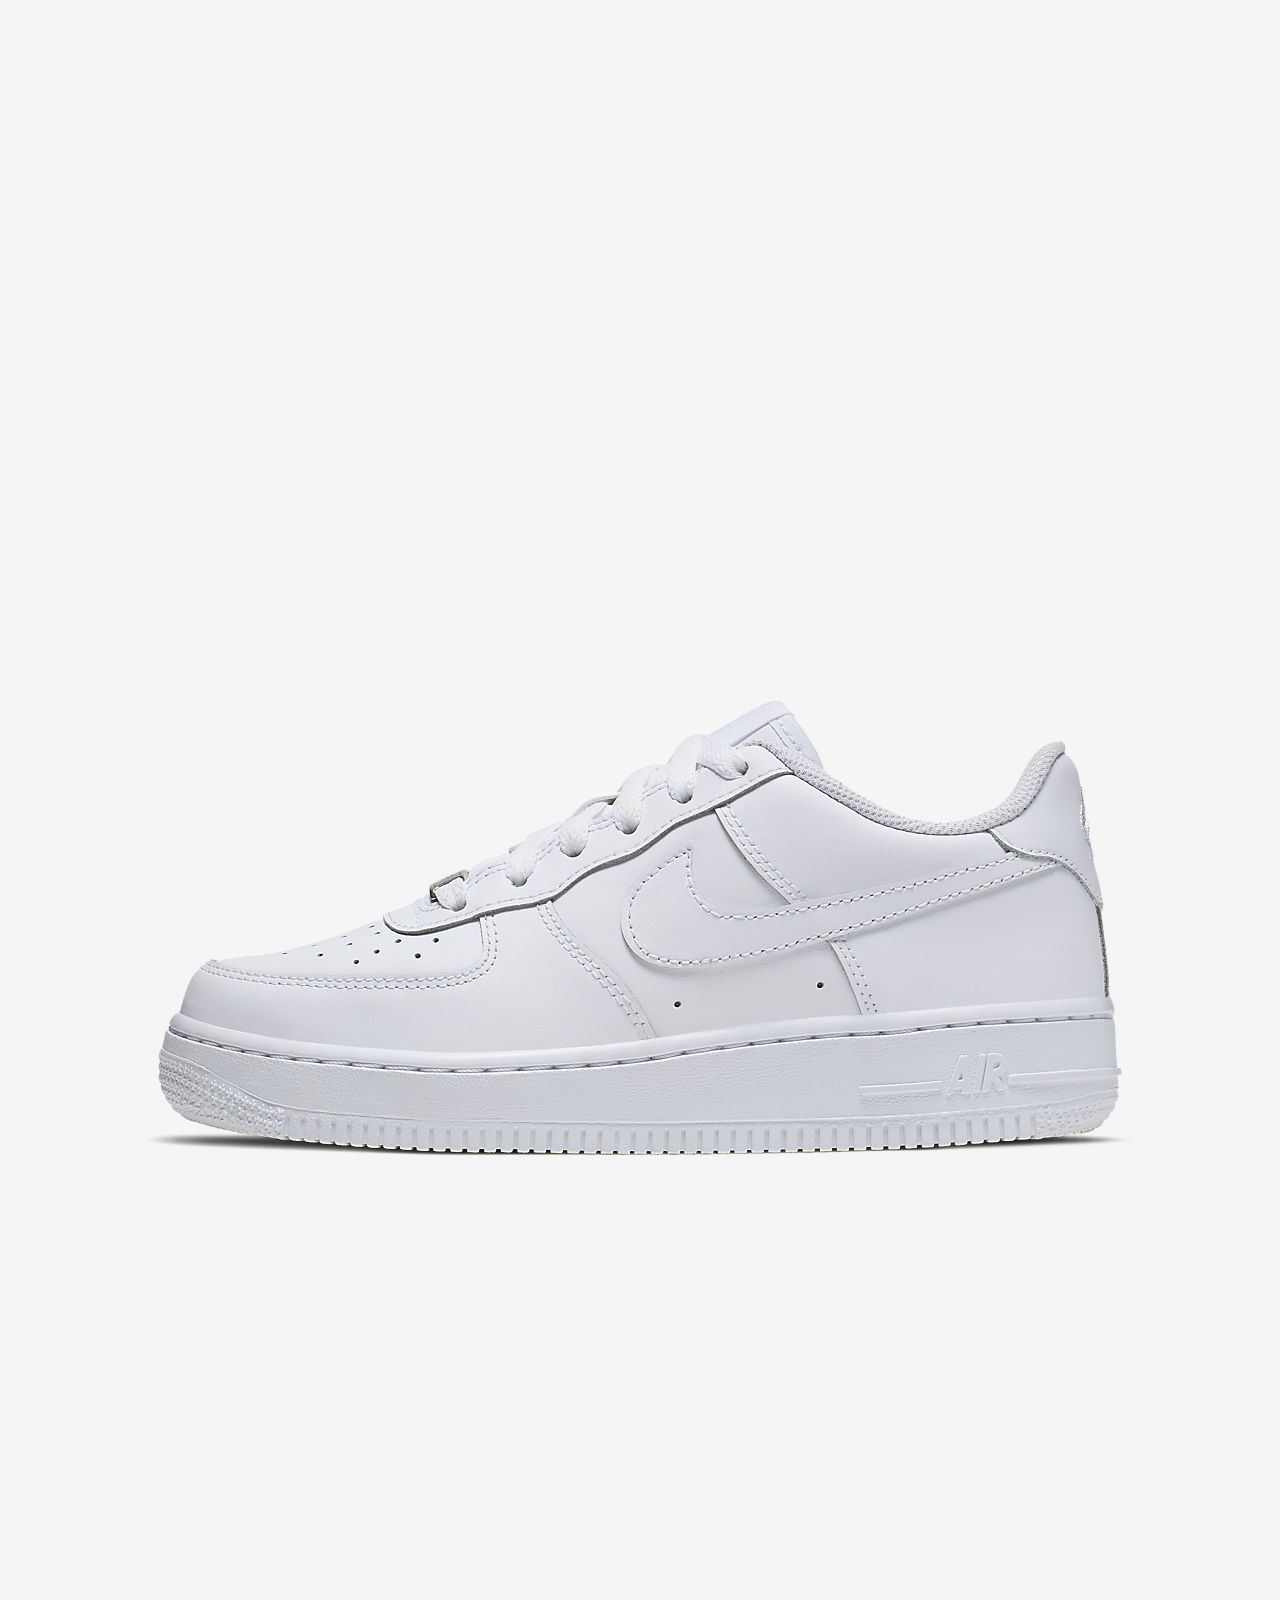 Nike Air Force 1 Triple White Older Kids' Shoe